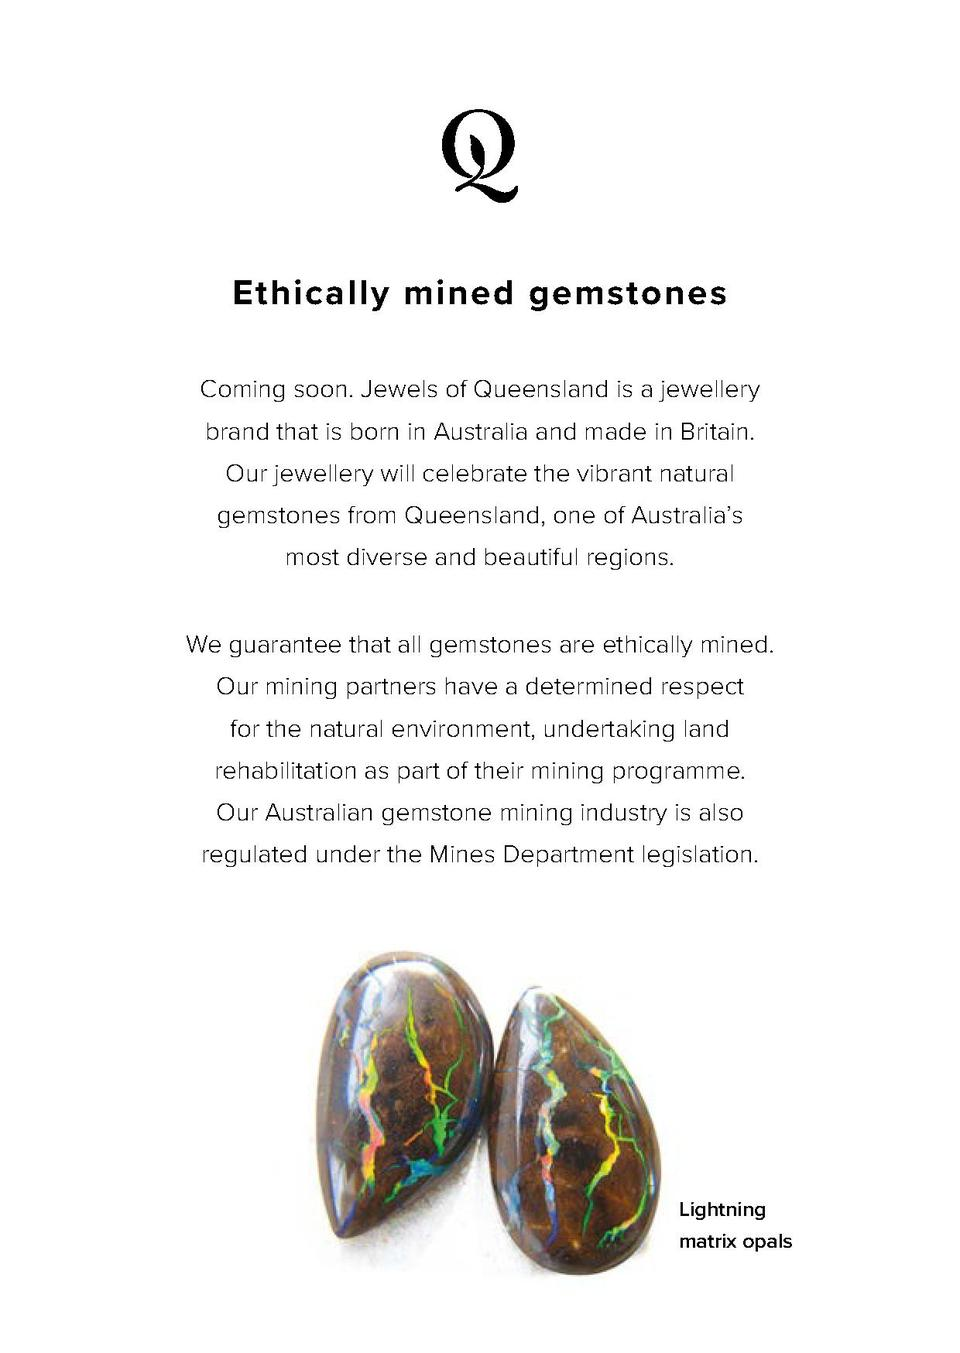 Ethically mined gemstones Coming soon. Jewels of Queensland is a jewellery brand that is born in Australia and made in Bri...